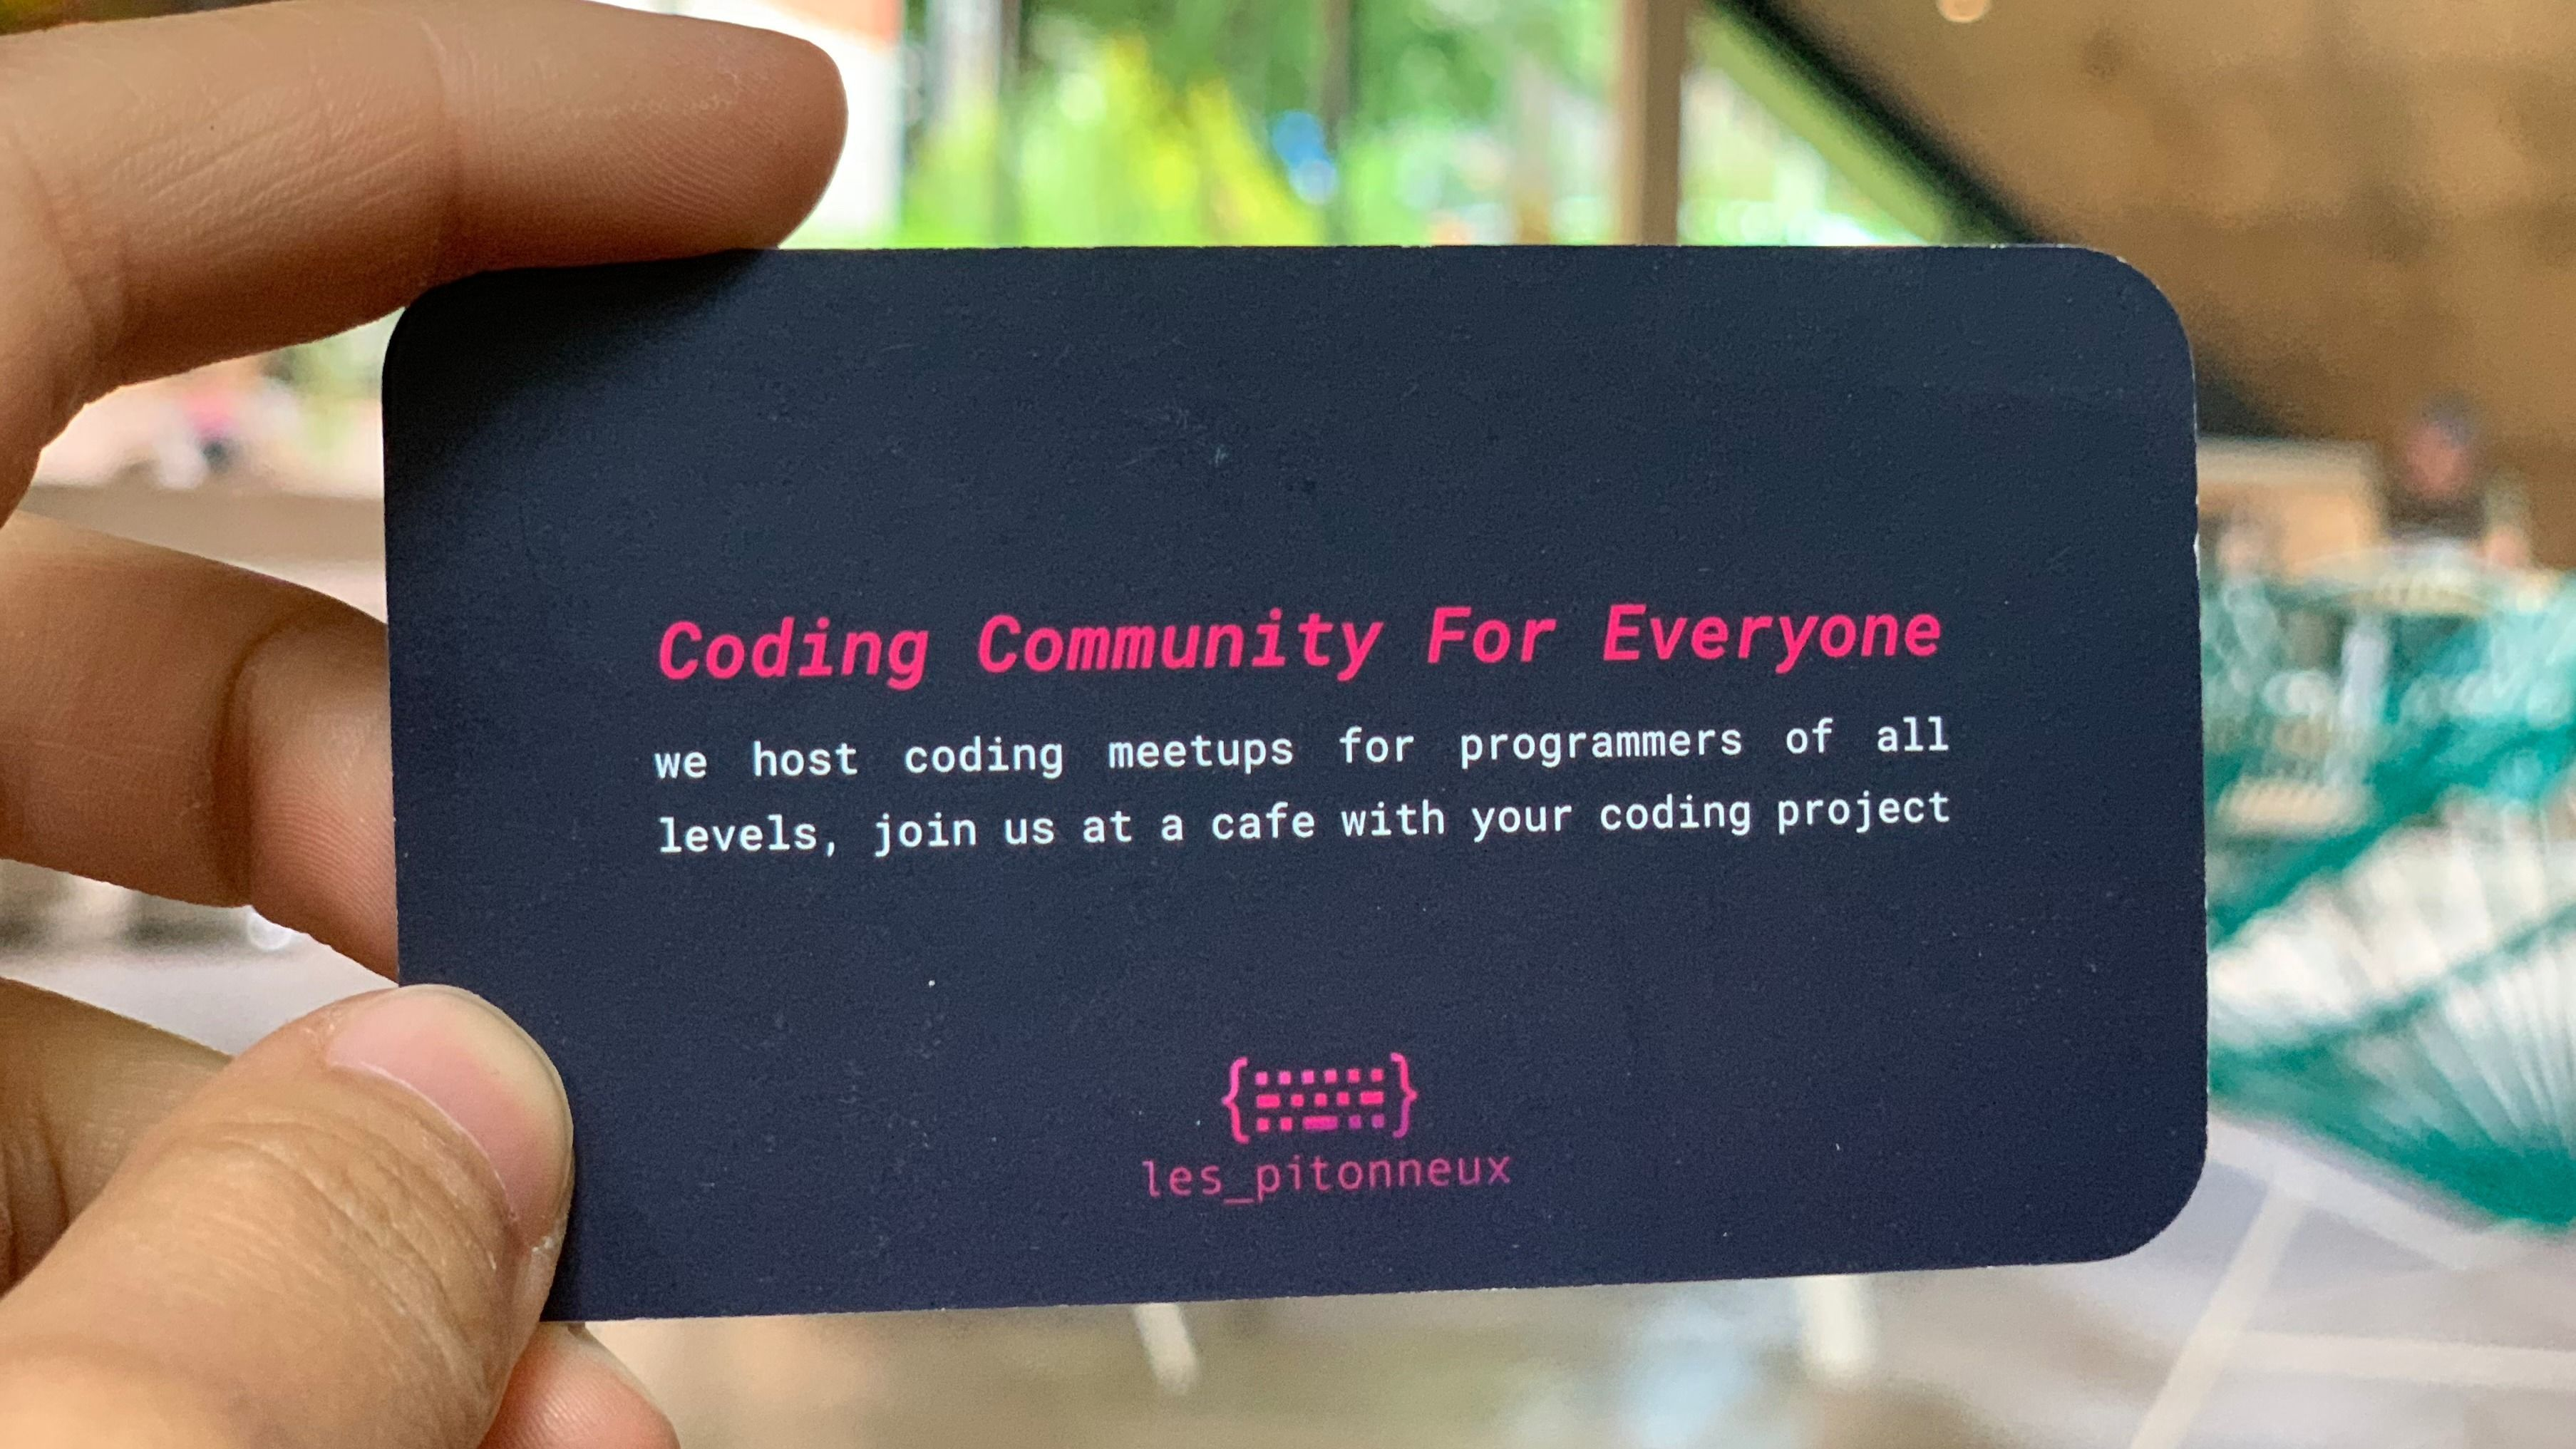 Les Pitonneux - Coding Community for Everyone